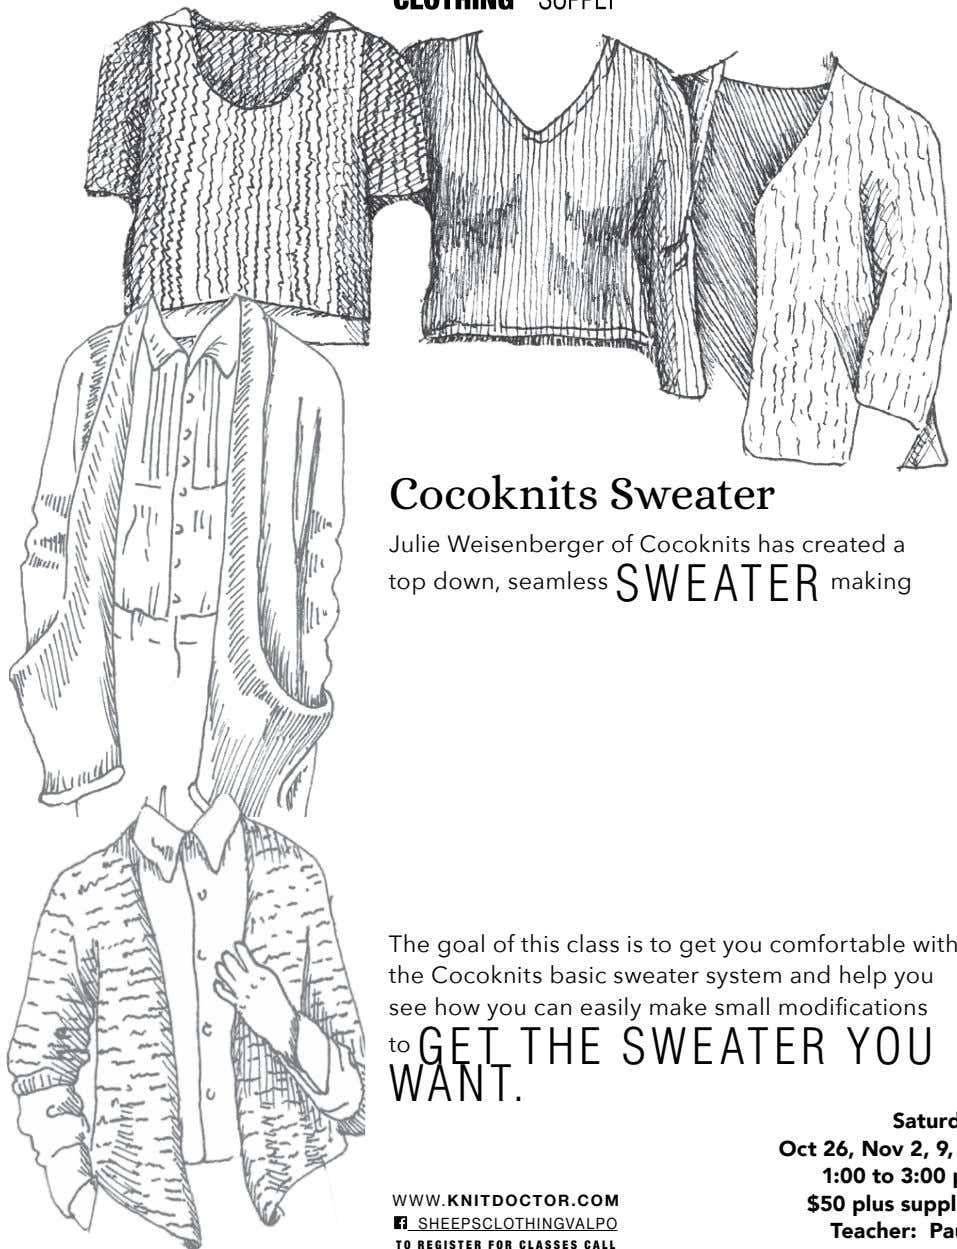 Cocoknits Sweater Julie Weisenberger of Cocoknits has created a top down, seamless SWEATER making The